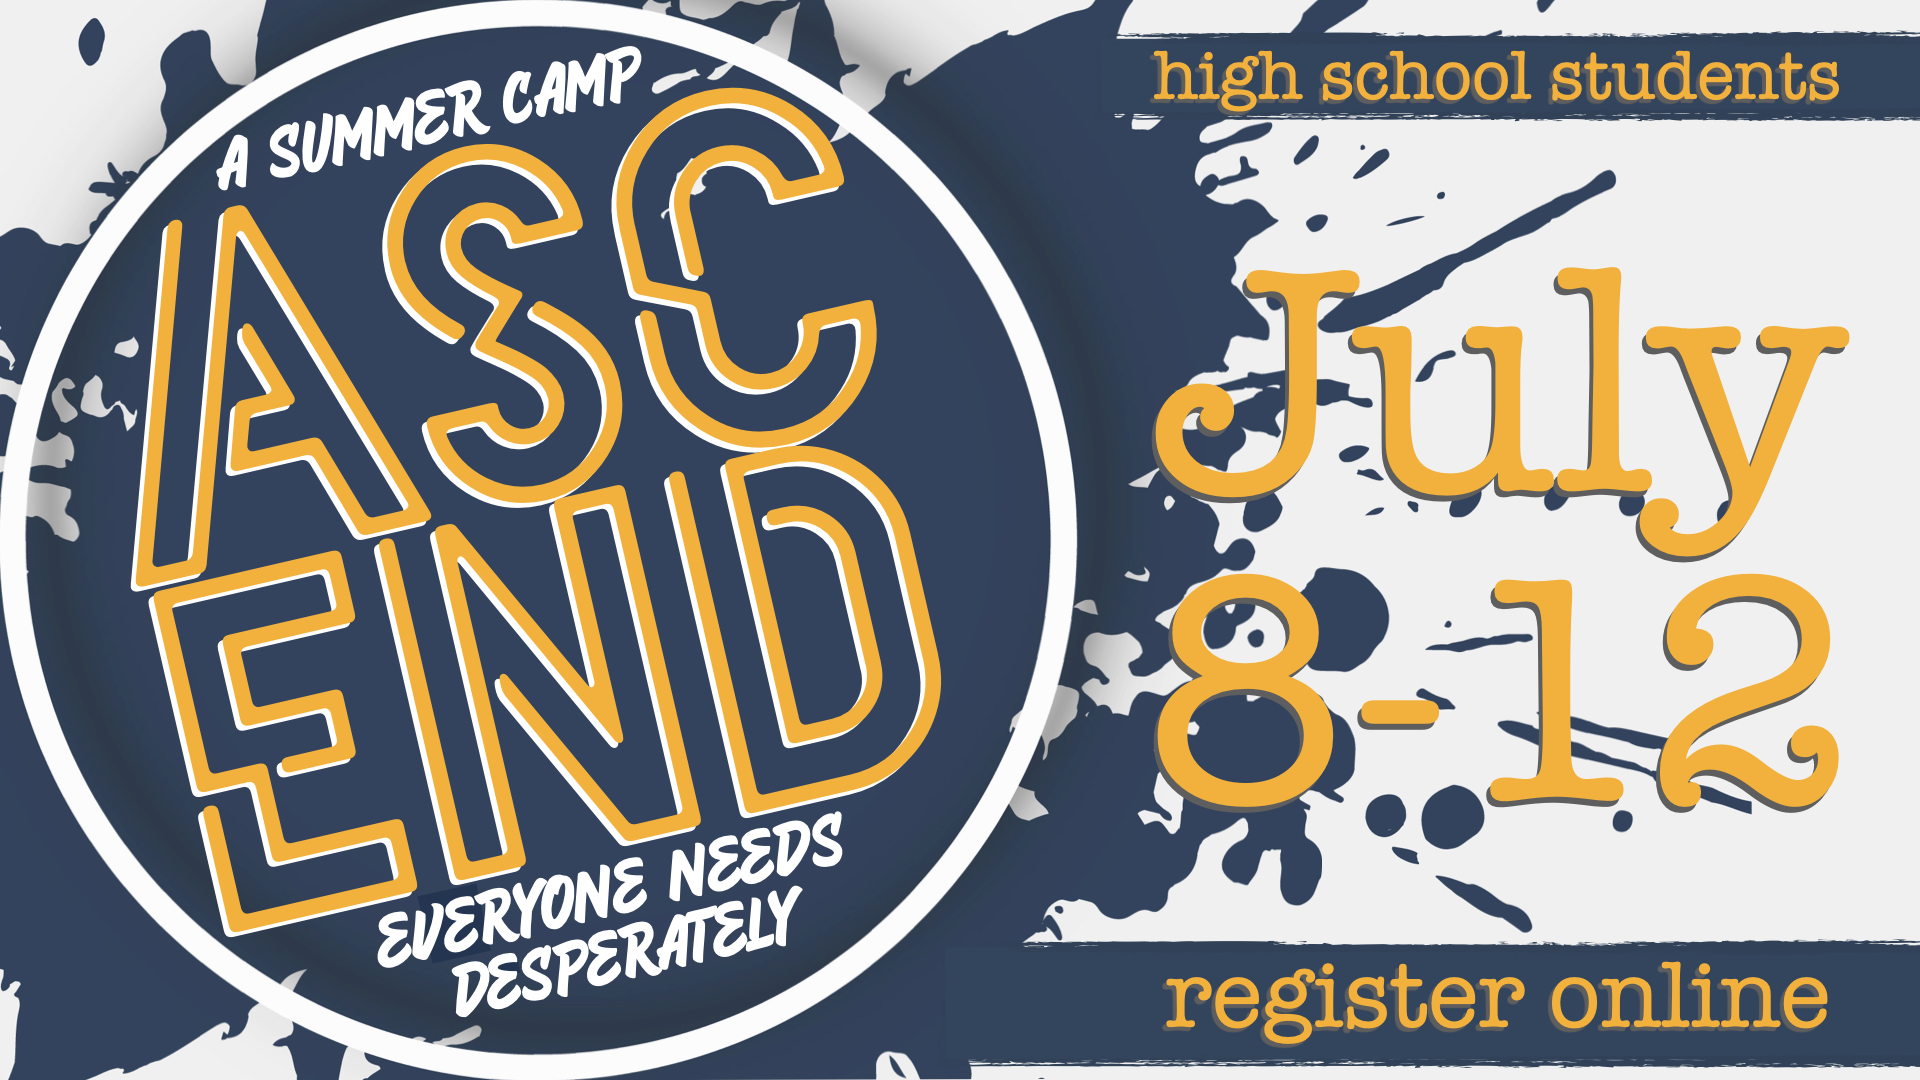 camp ascend graphic.001 image